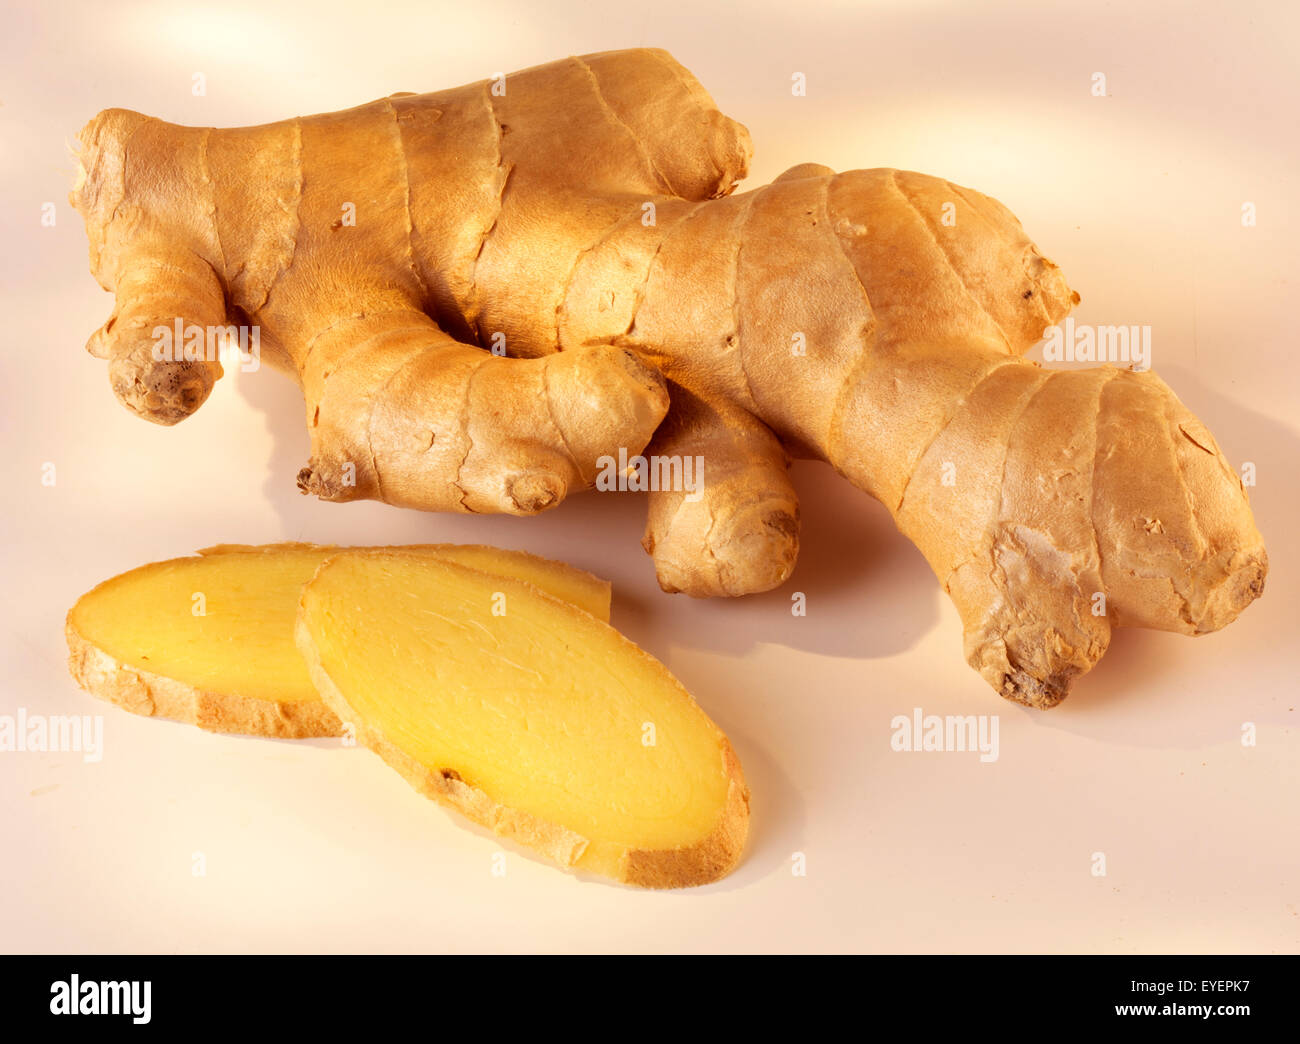 WHOLE AND SLICED GINGER - Stock Image